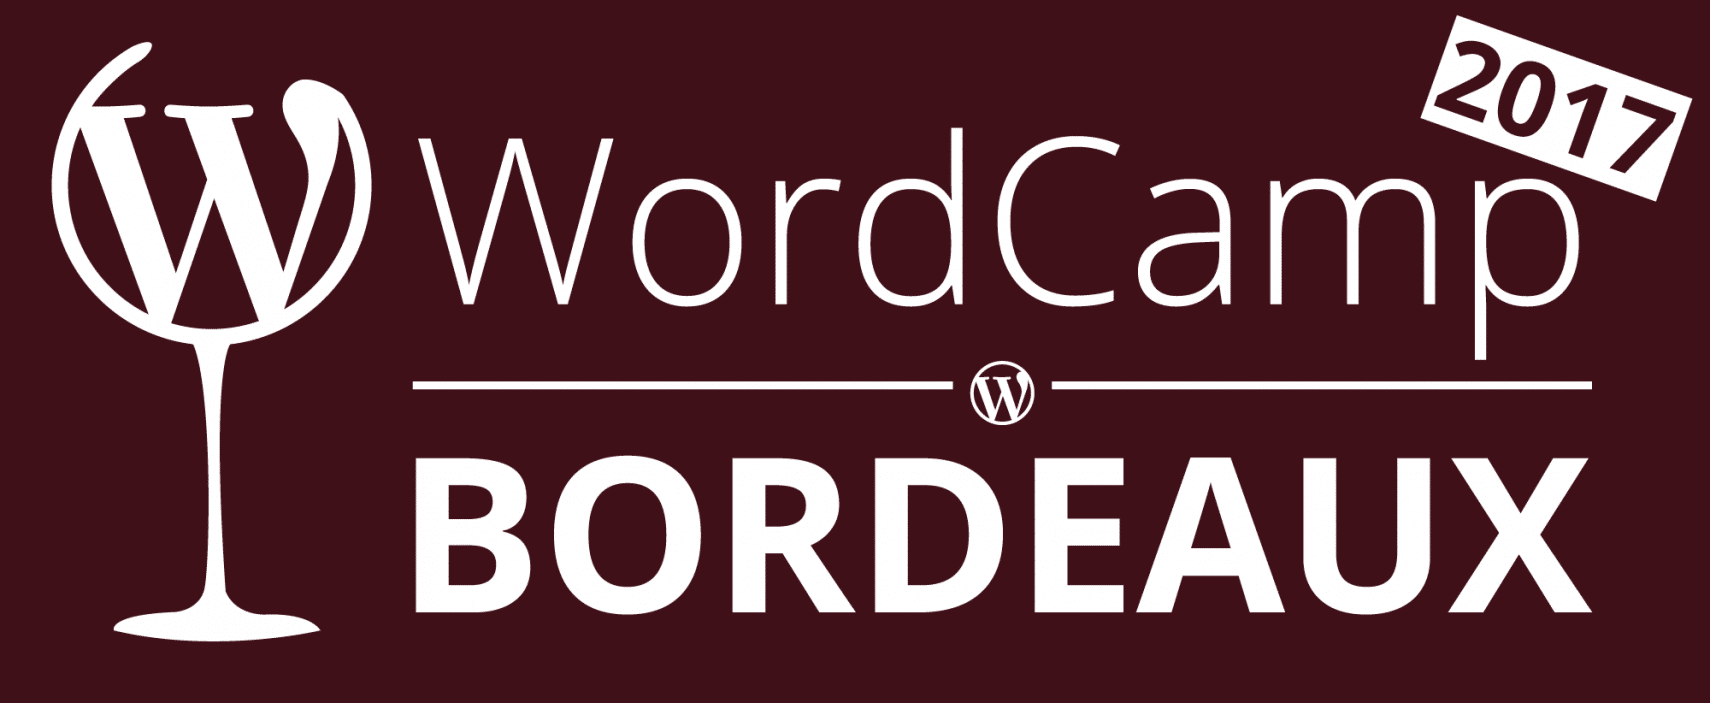 Logo du Wordcamp Bordeaux 2017